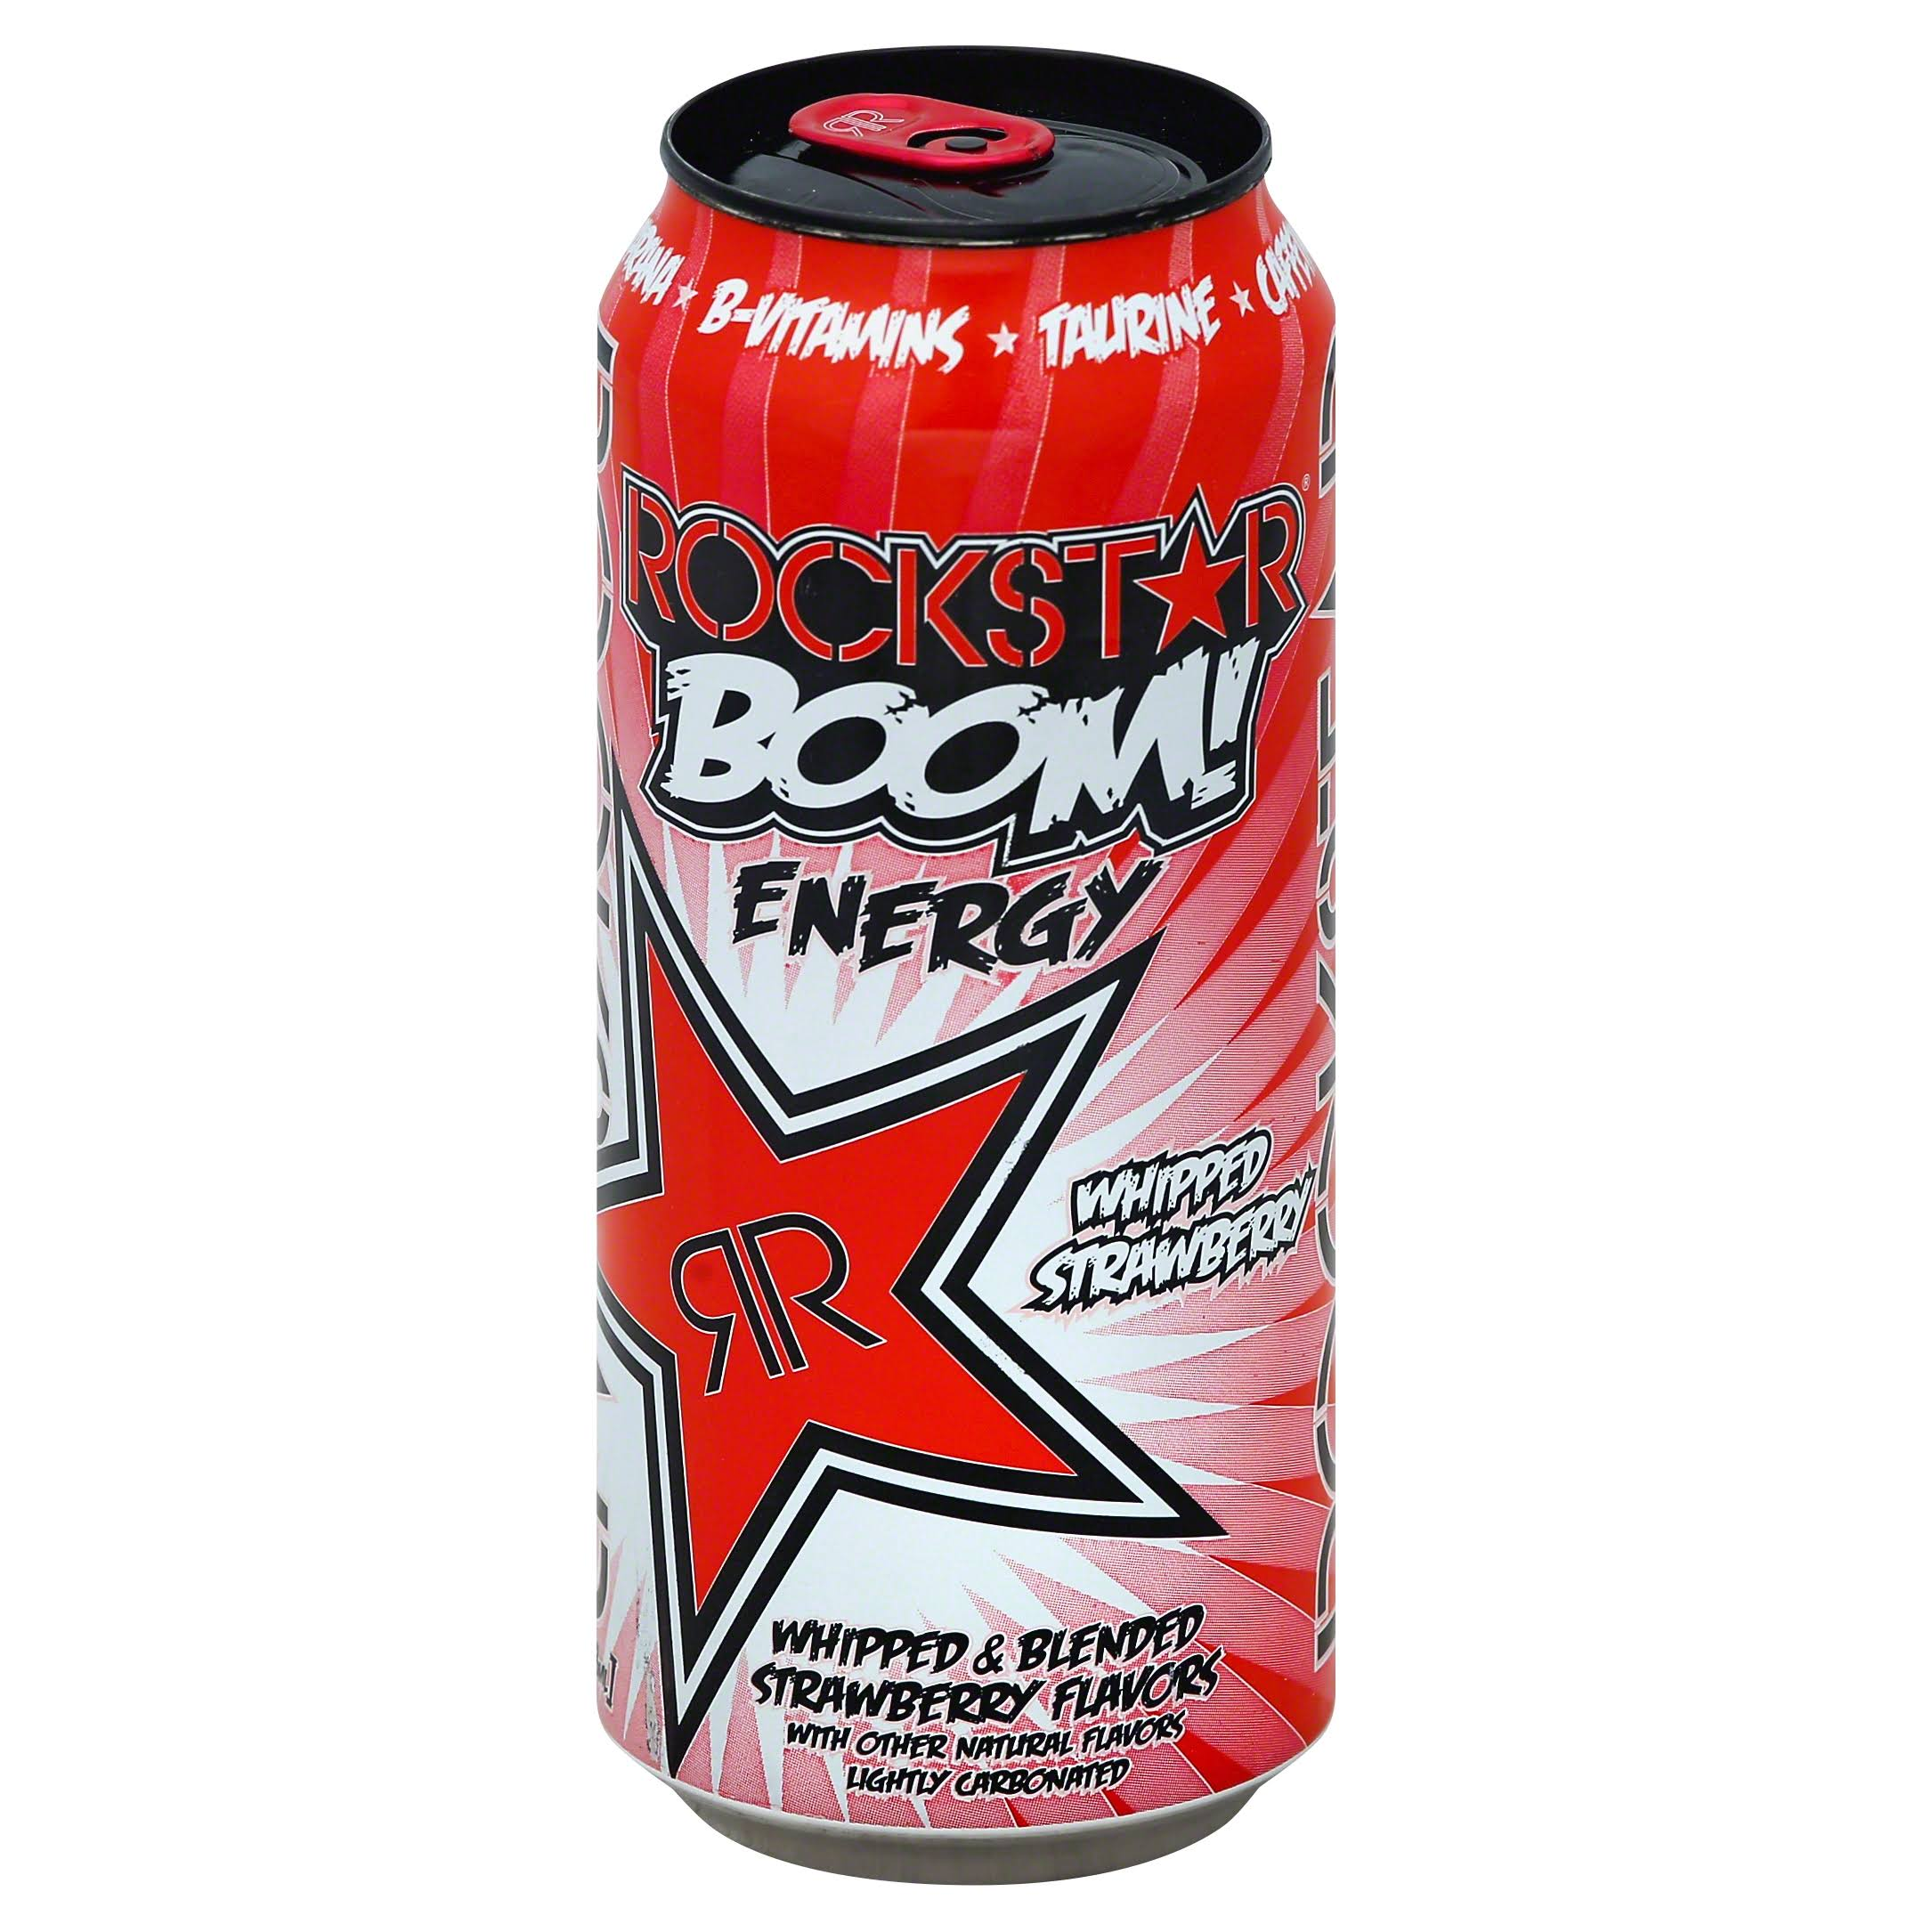 Rockstar Boom Energy Drink - Whipped Strawberry